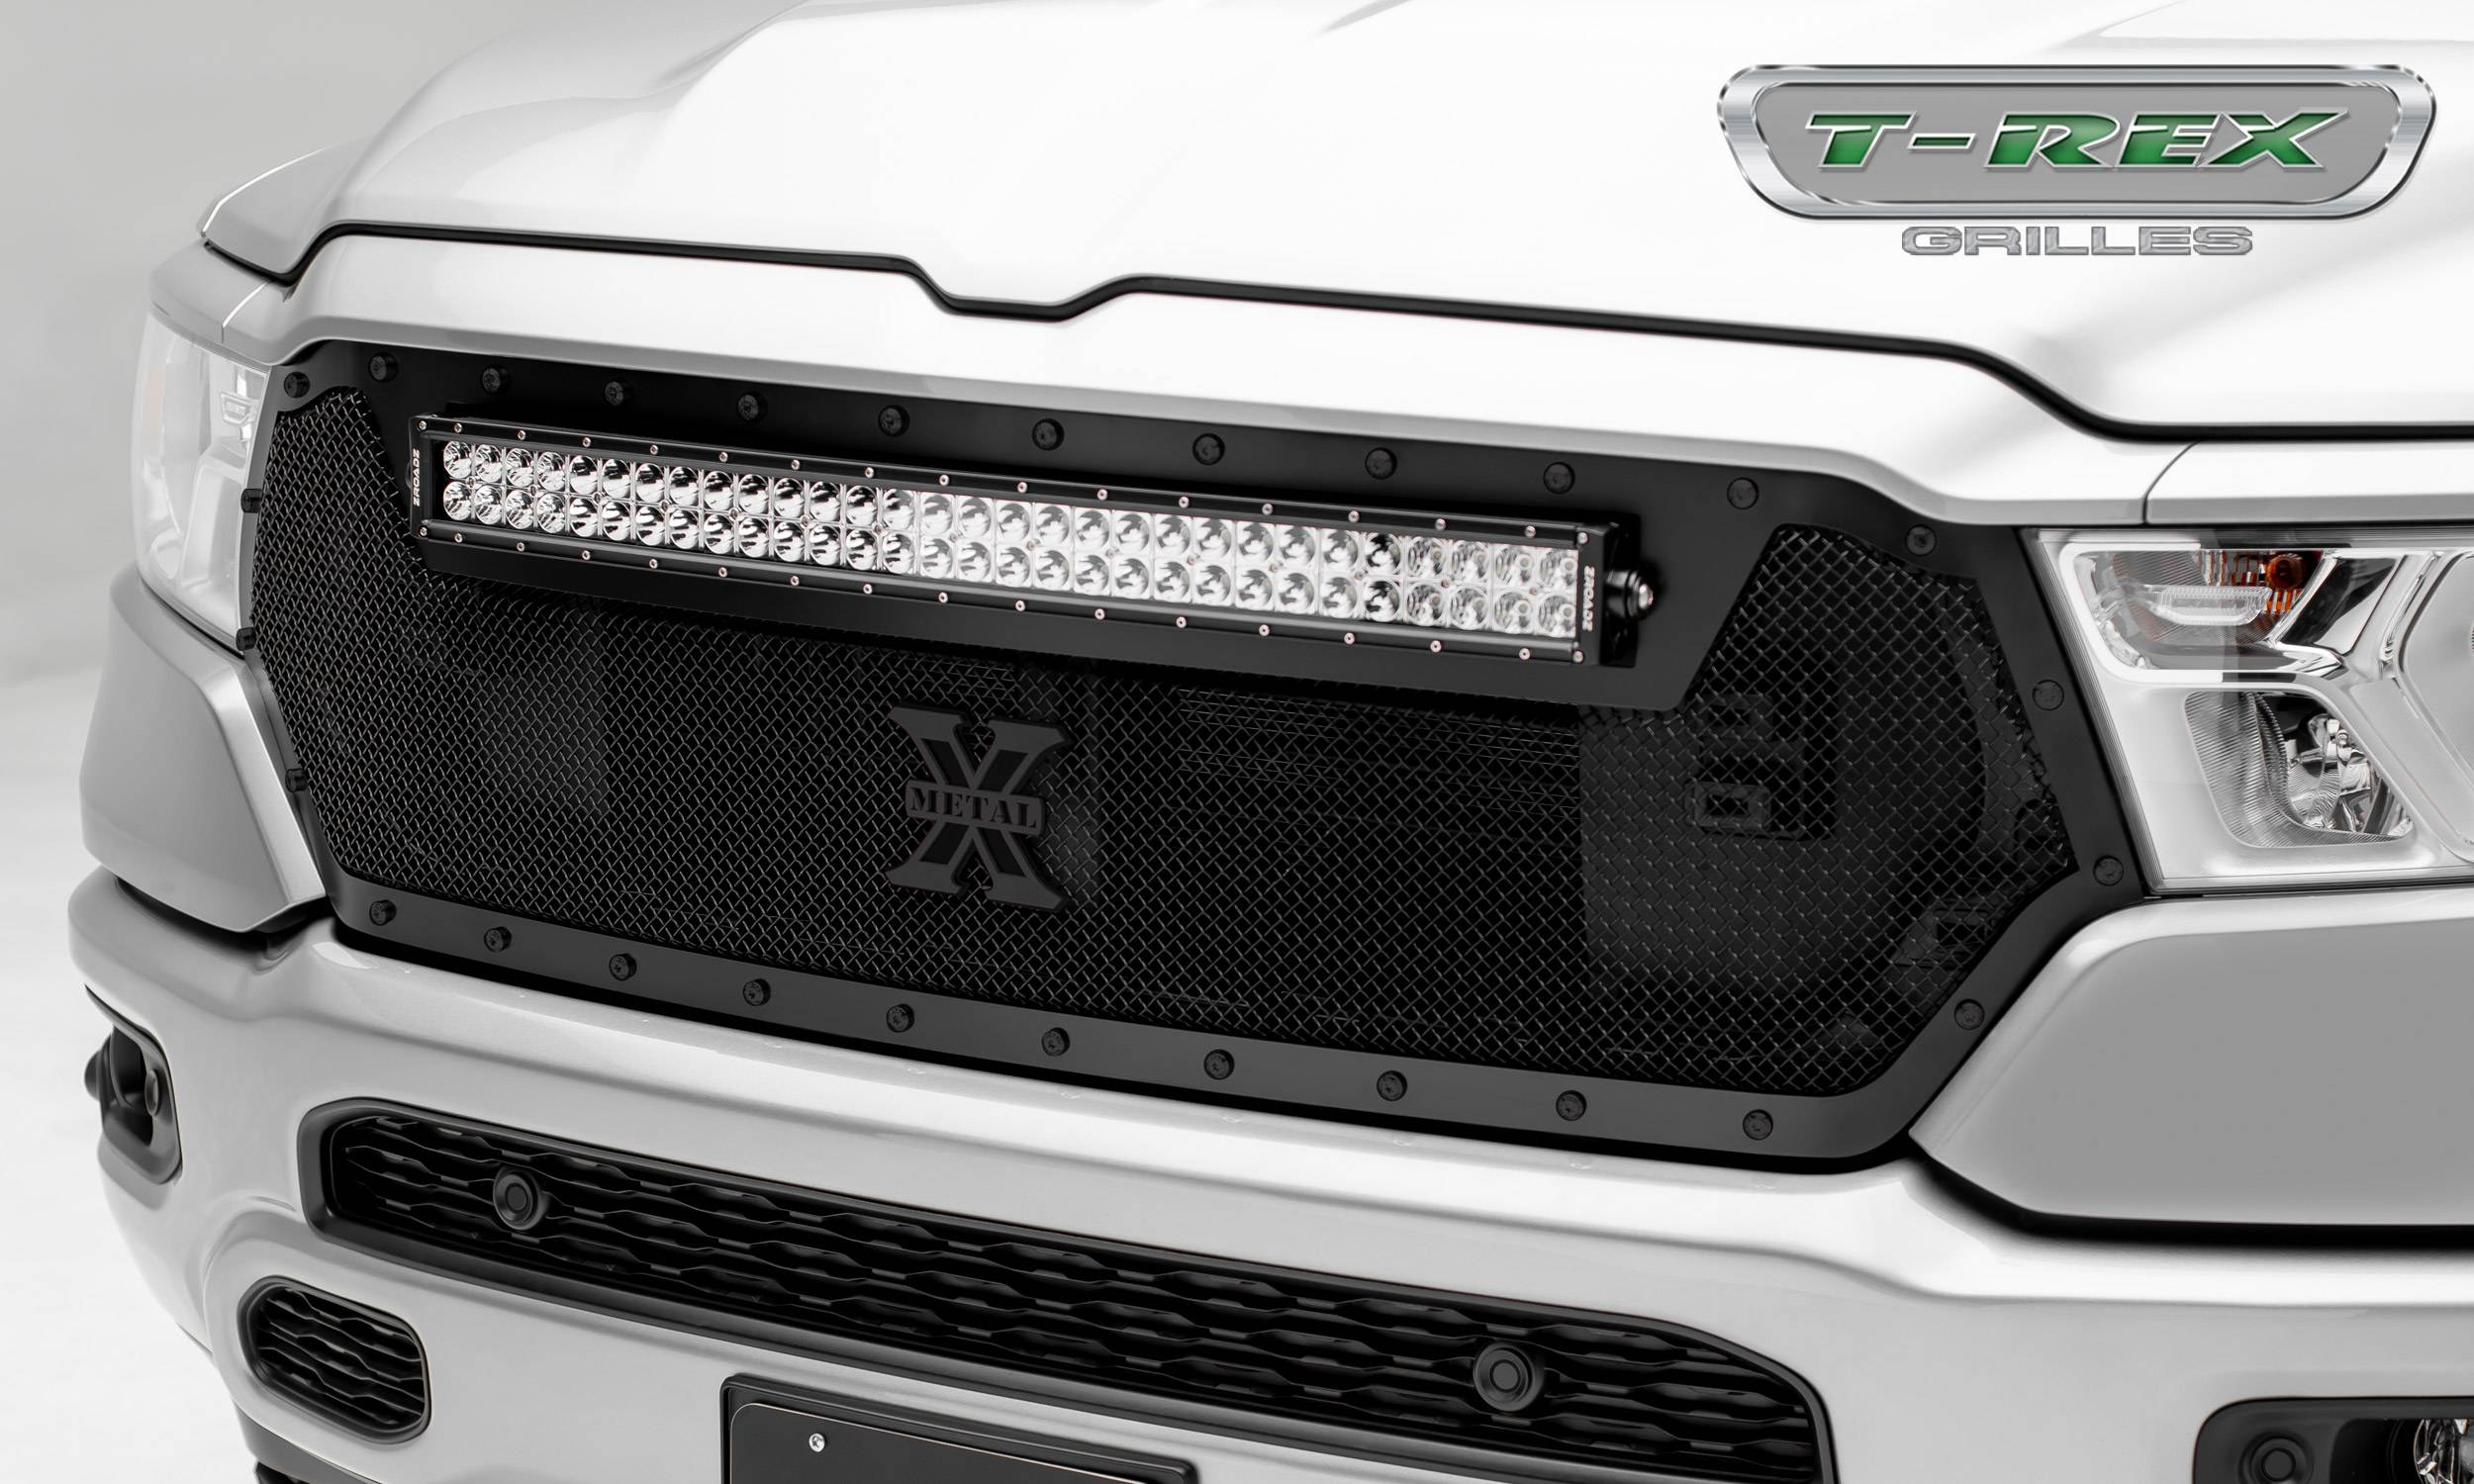 T-REX Grilles - RAM 1500 - Stealth Torch Main Grille Replacement w/ (1) 30 inch LED Light Bar - Formed Mesh & Black Studs - Black Finish - Pt # 6314651-BR